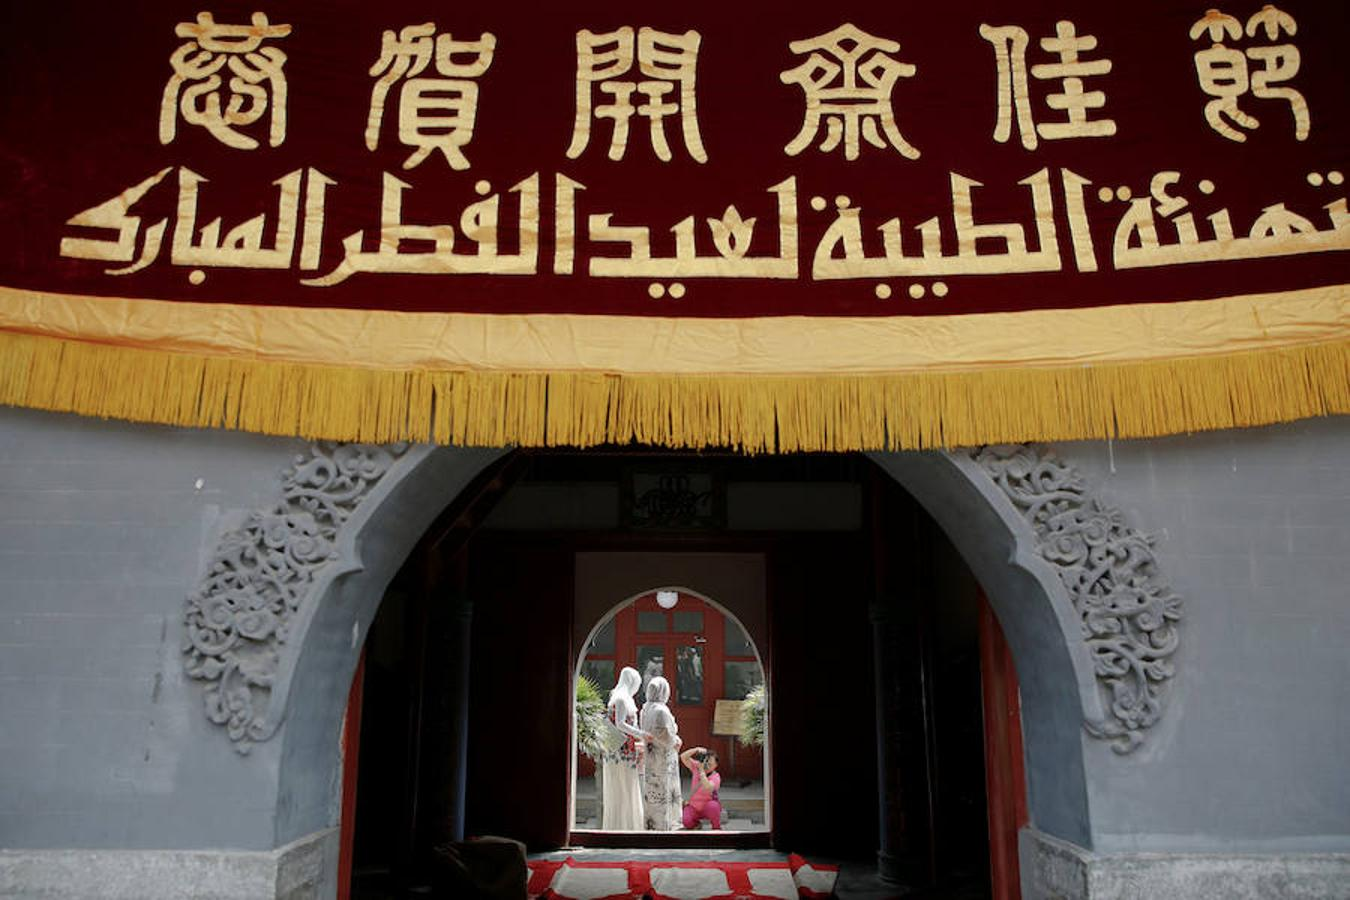 chinese culture essay Chinese culture preservation in singapore essay sample when walking through the chinatown, people can easily see the red decorations like chinese knots and paper-cut.